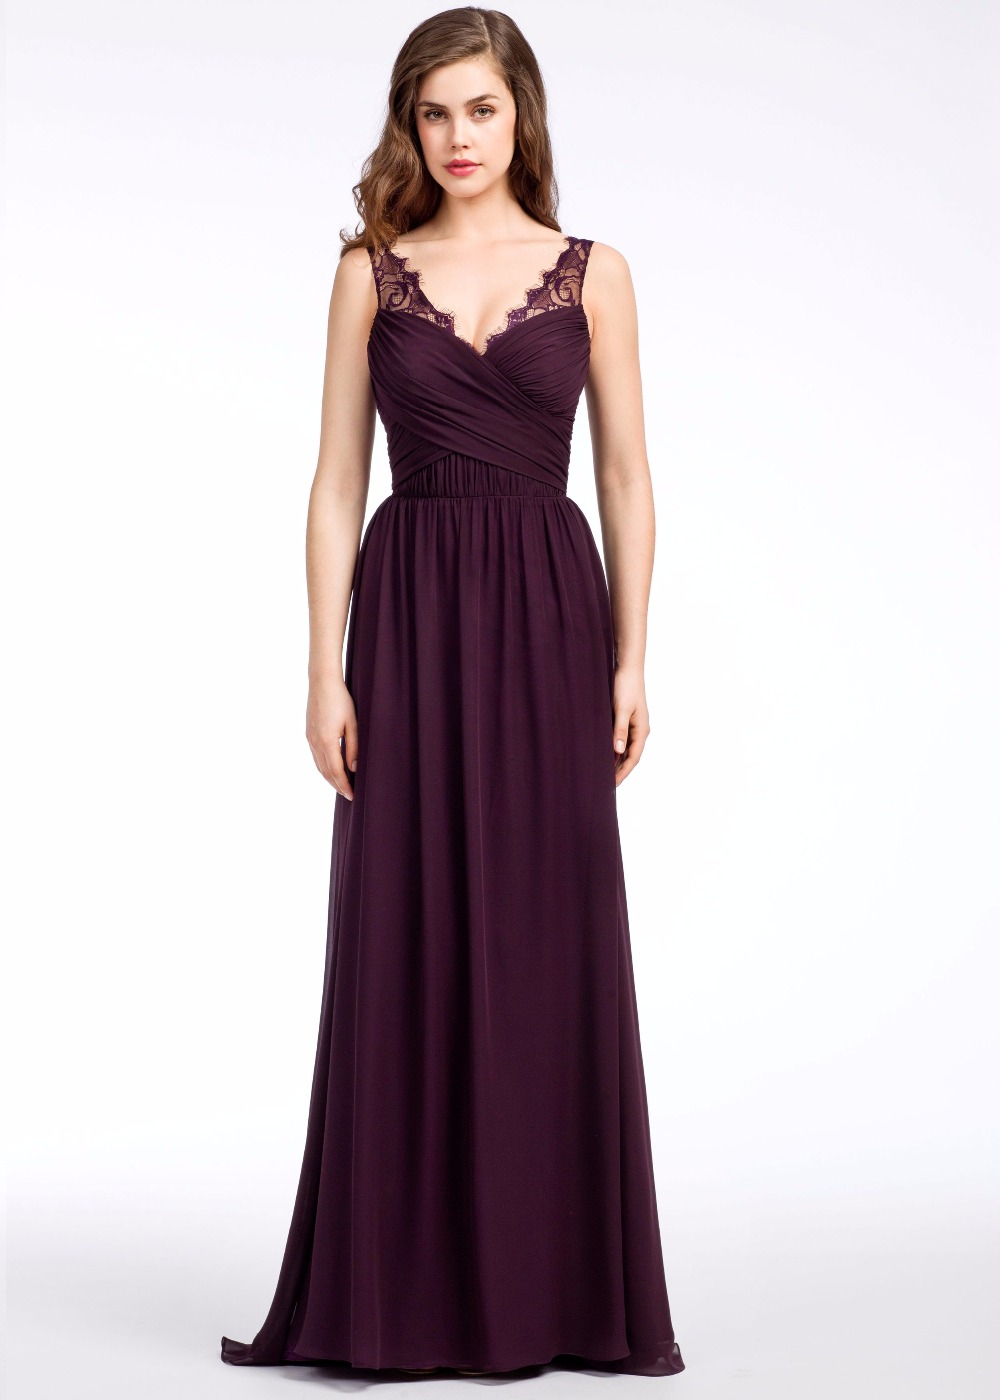 Online get cheap dark purple dress for Cheap formal dresses for wedding guests